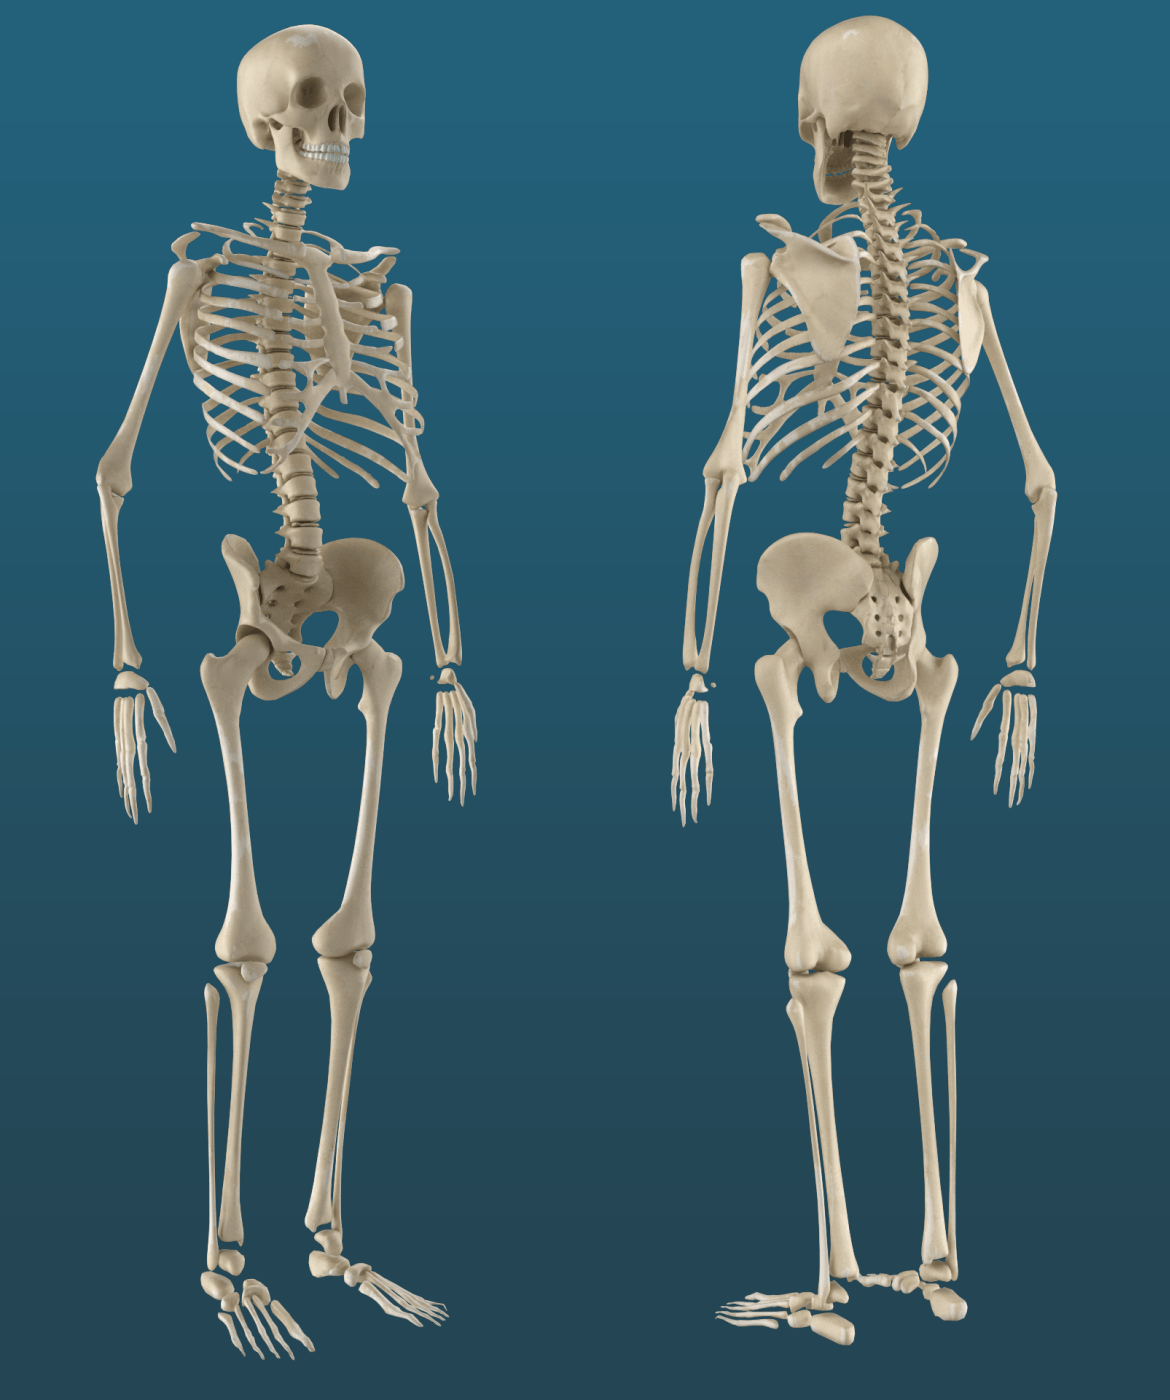 Functions And Anatomy Of Human Body